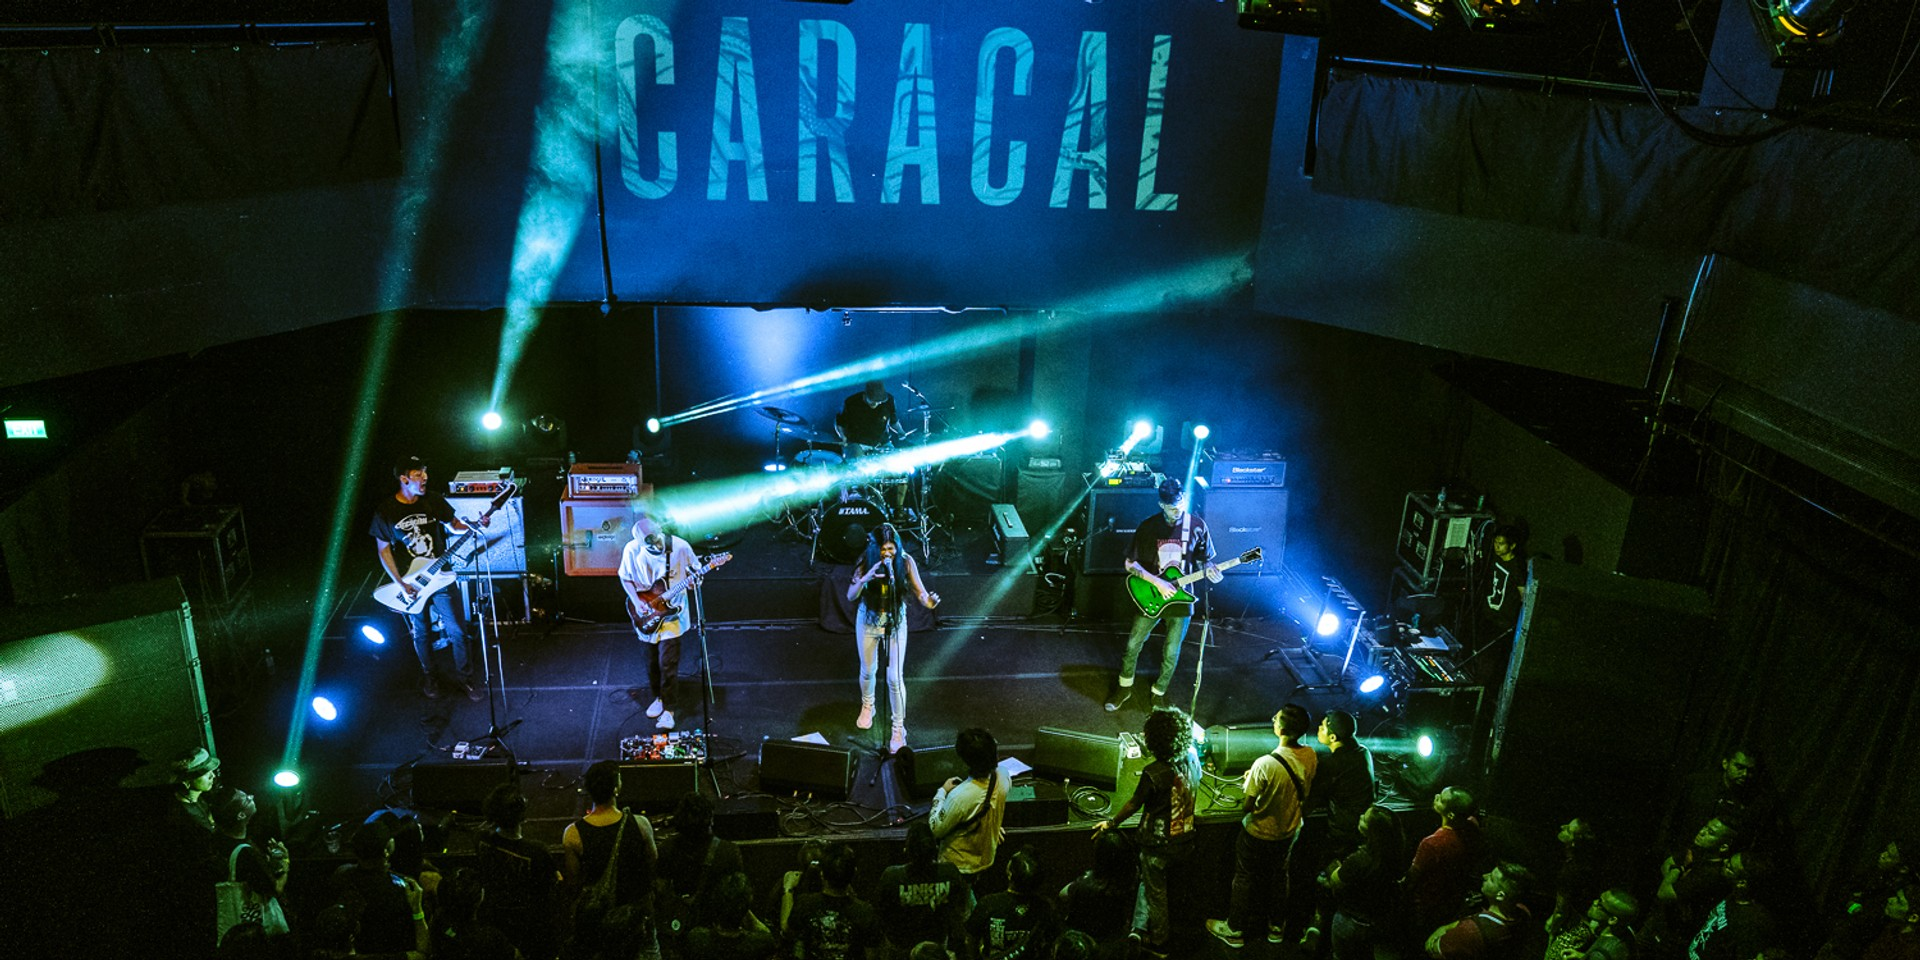 Caracal and friends put on a fantastic show at Daily Essentials – photo gallery